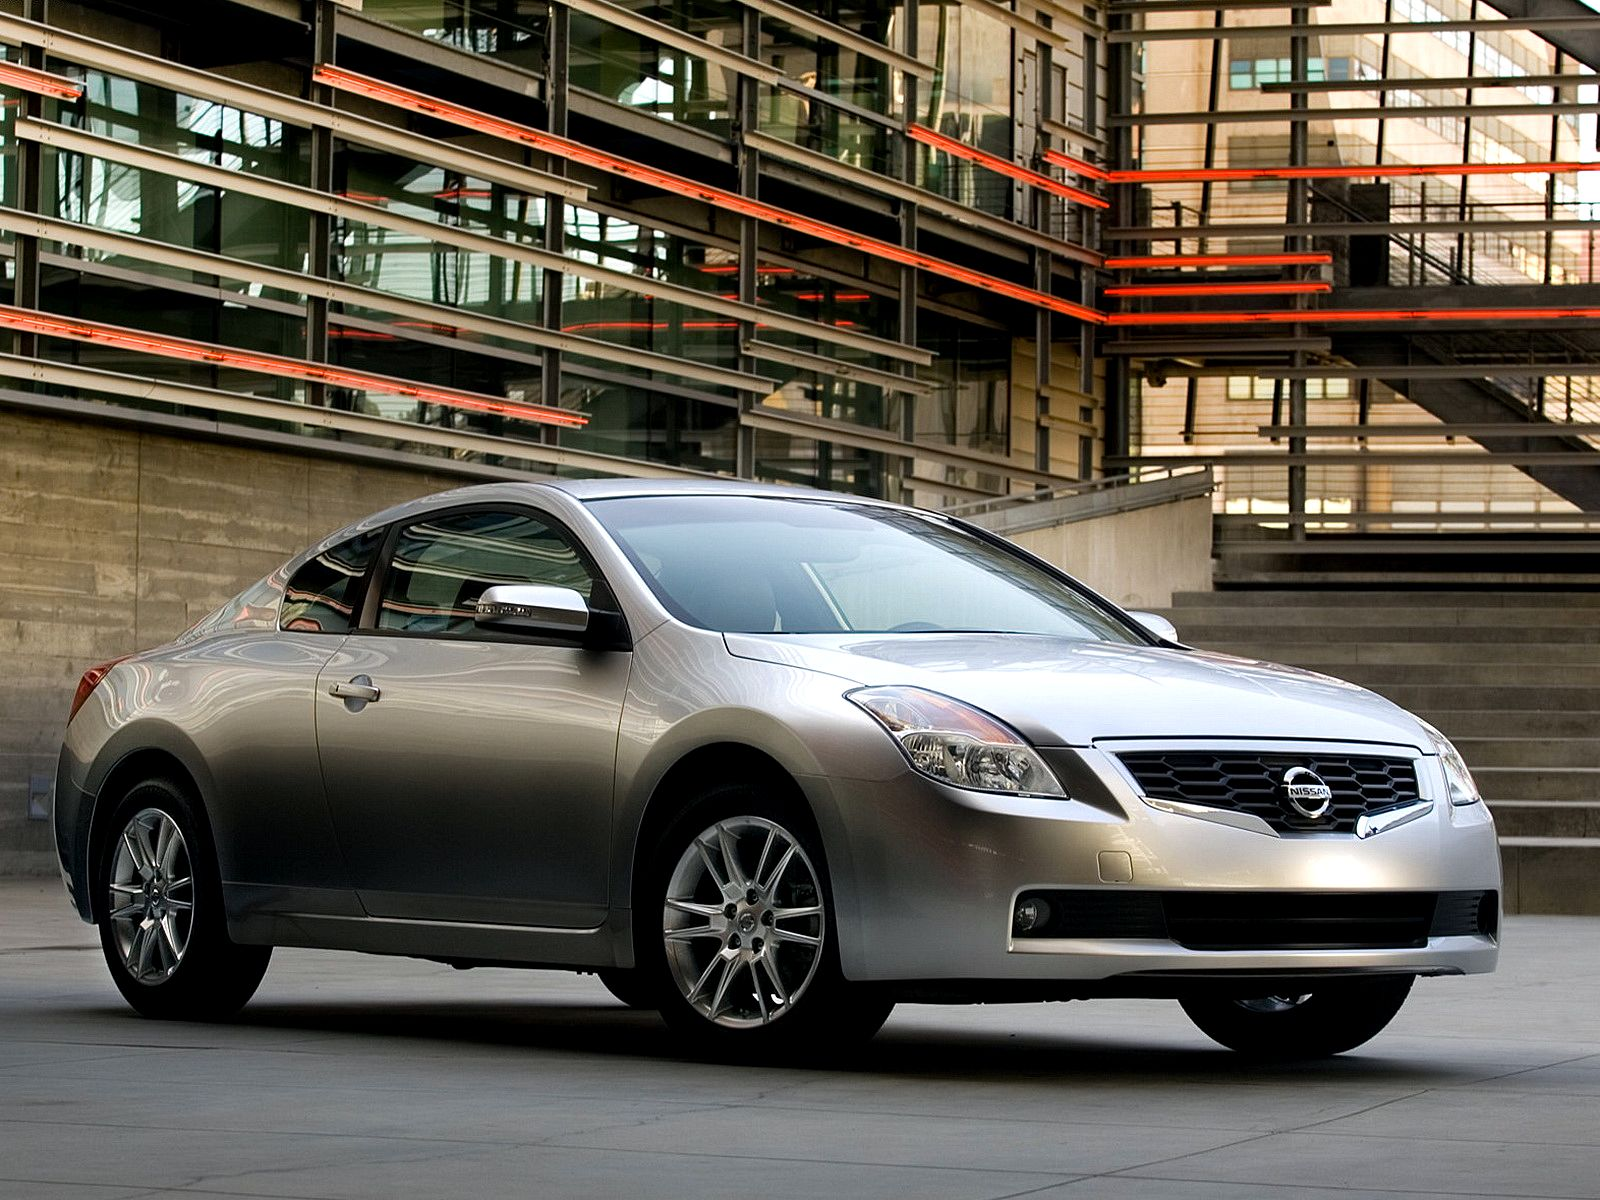 hight resolution of nissan altima coupe wallpaper